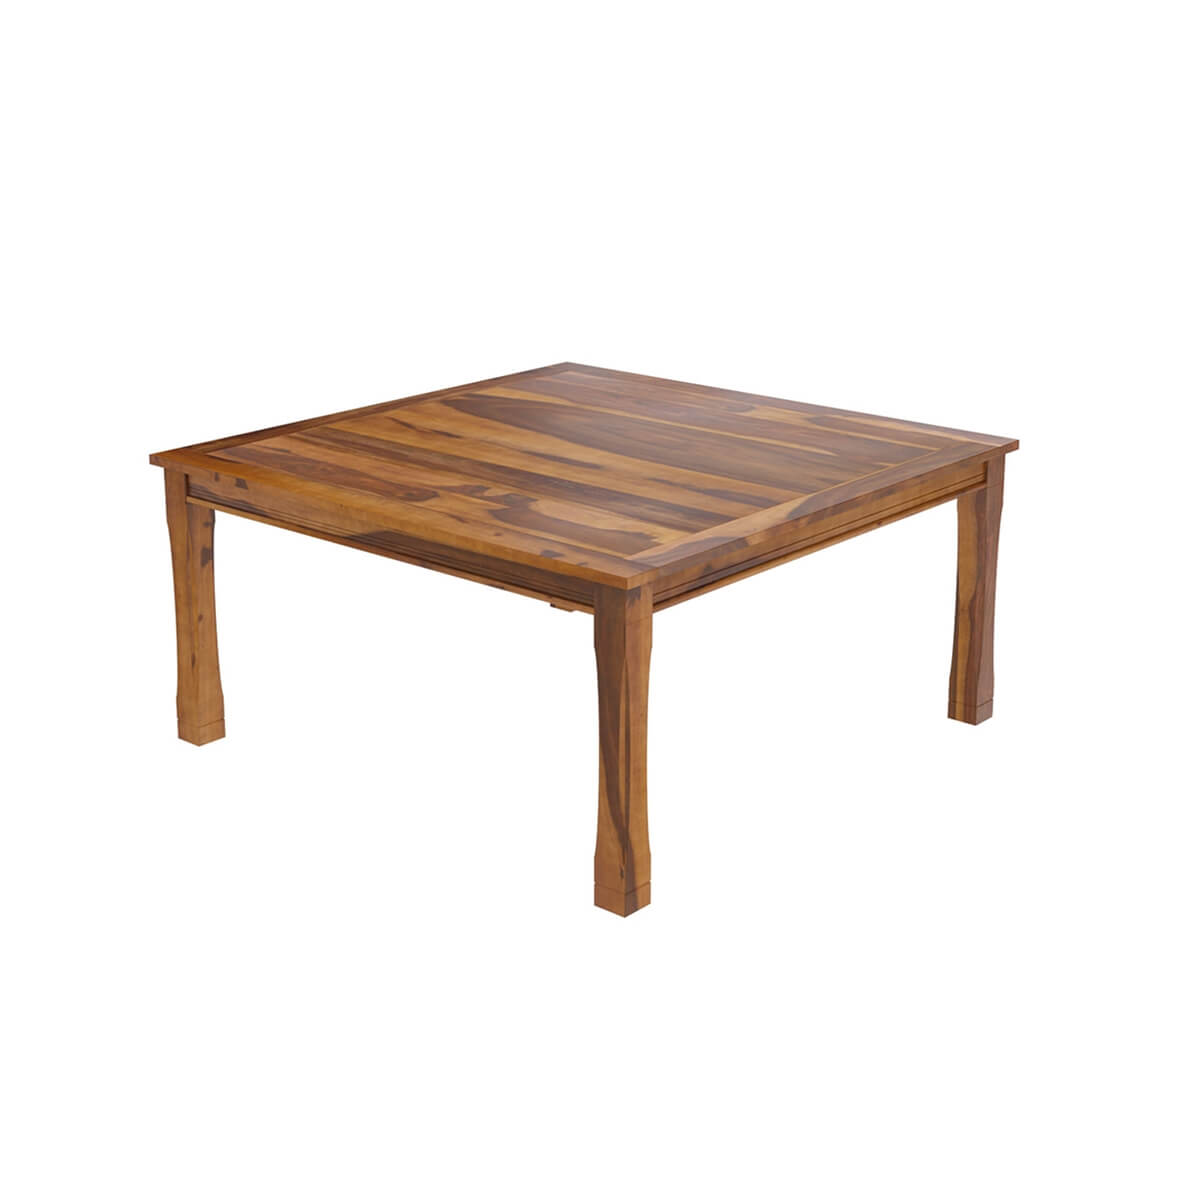 dallas ranch transitional square wood dining room table On wood dining room table